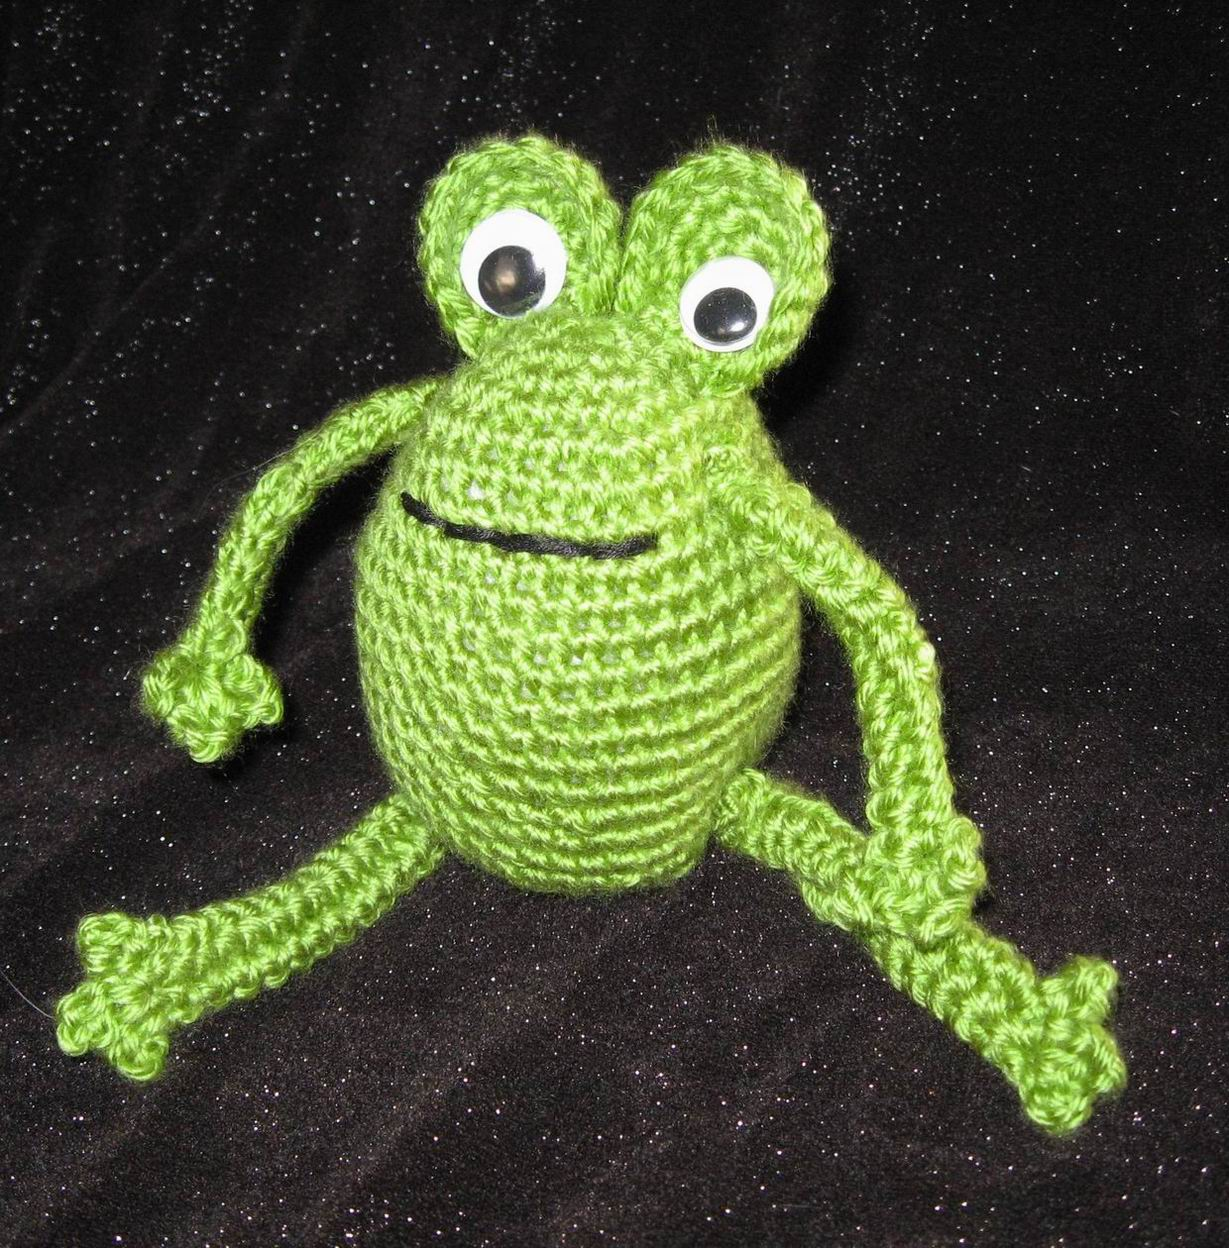 2000 Free Amigurumi Patterns: Frog pattern